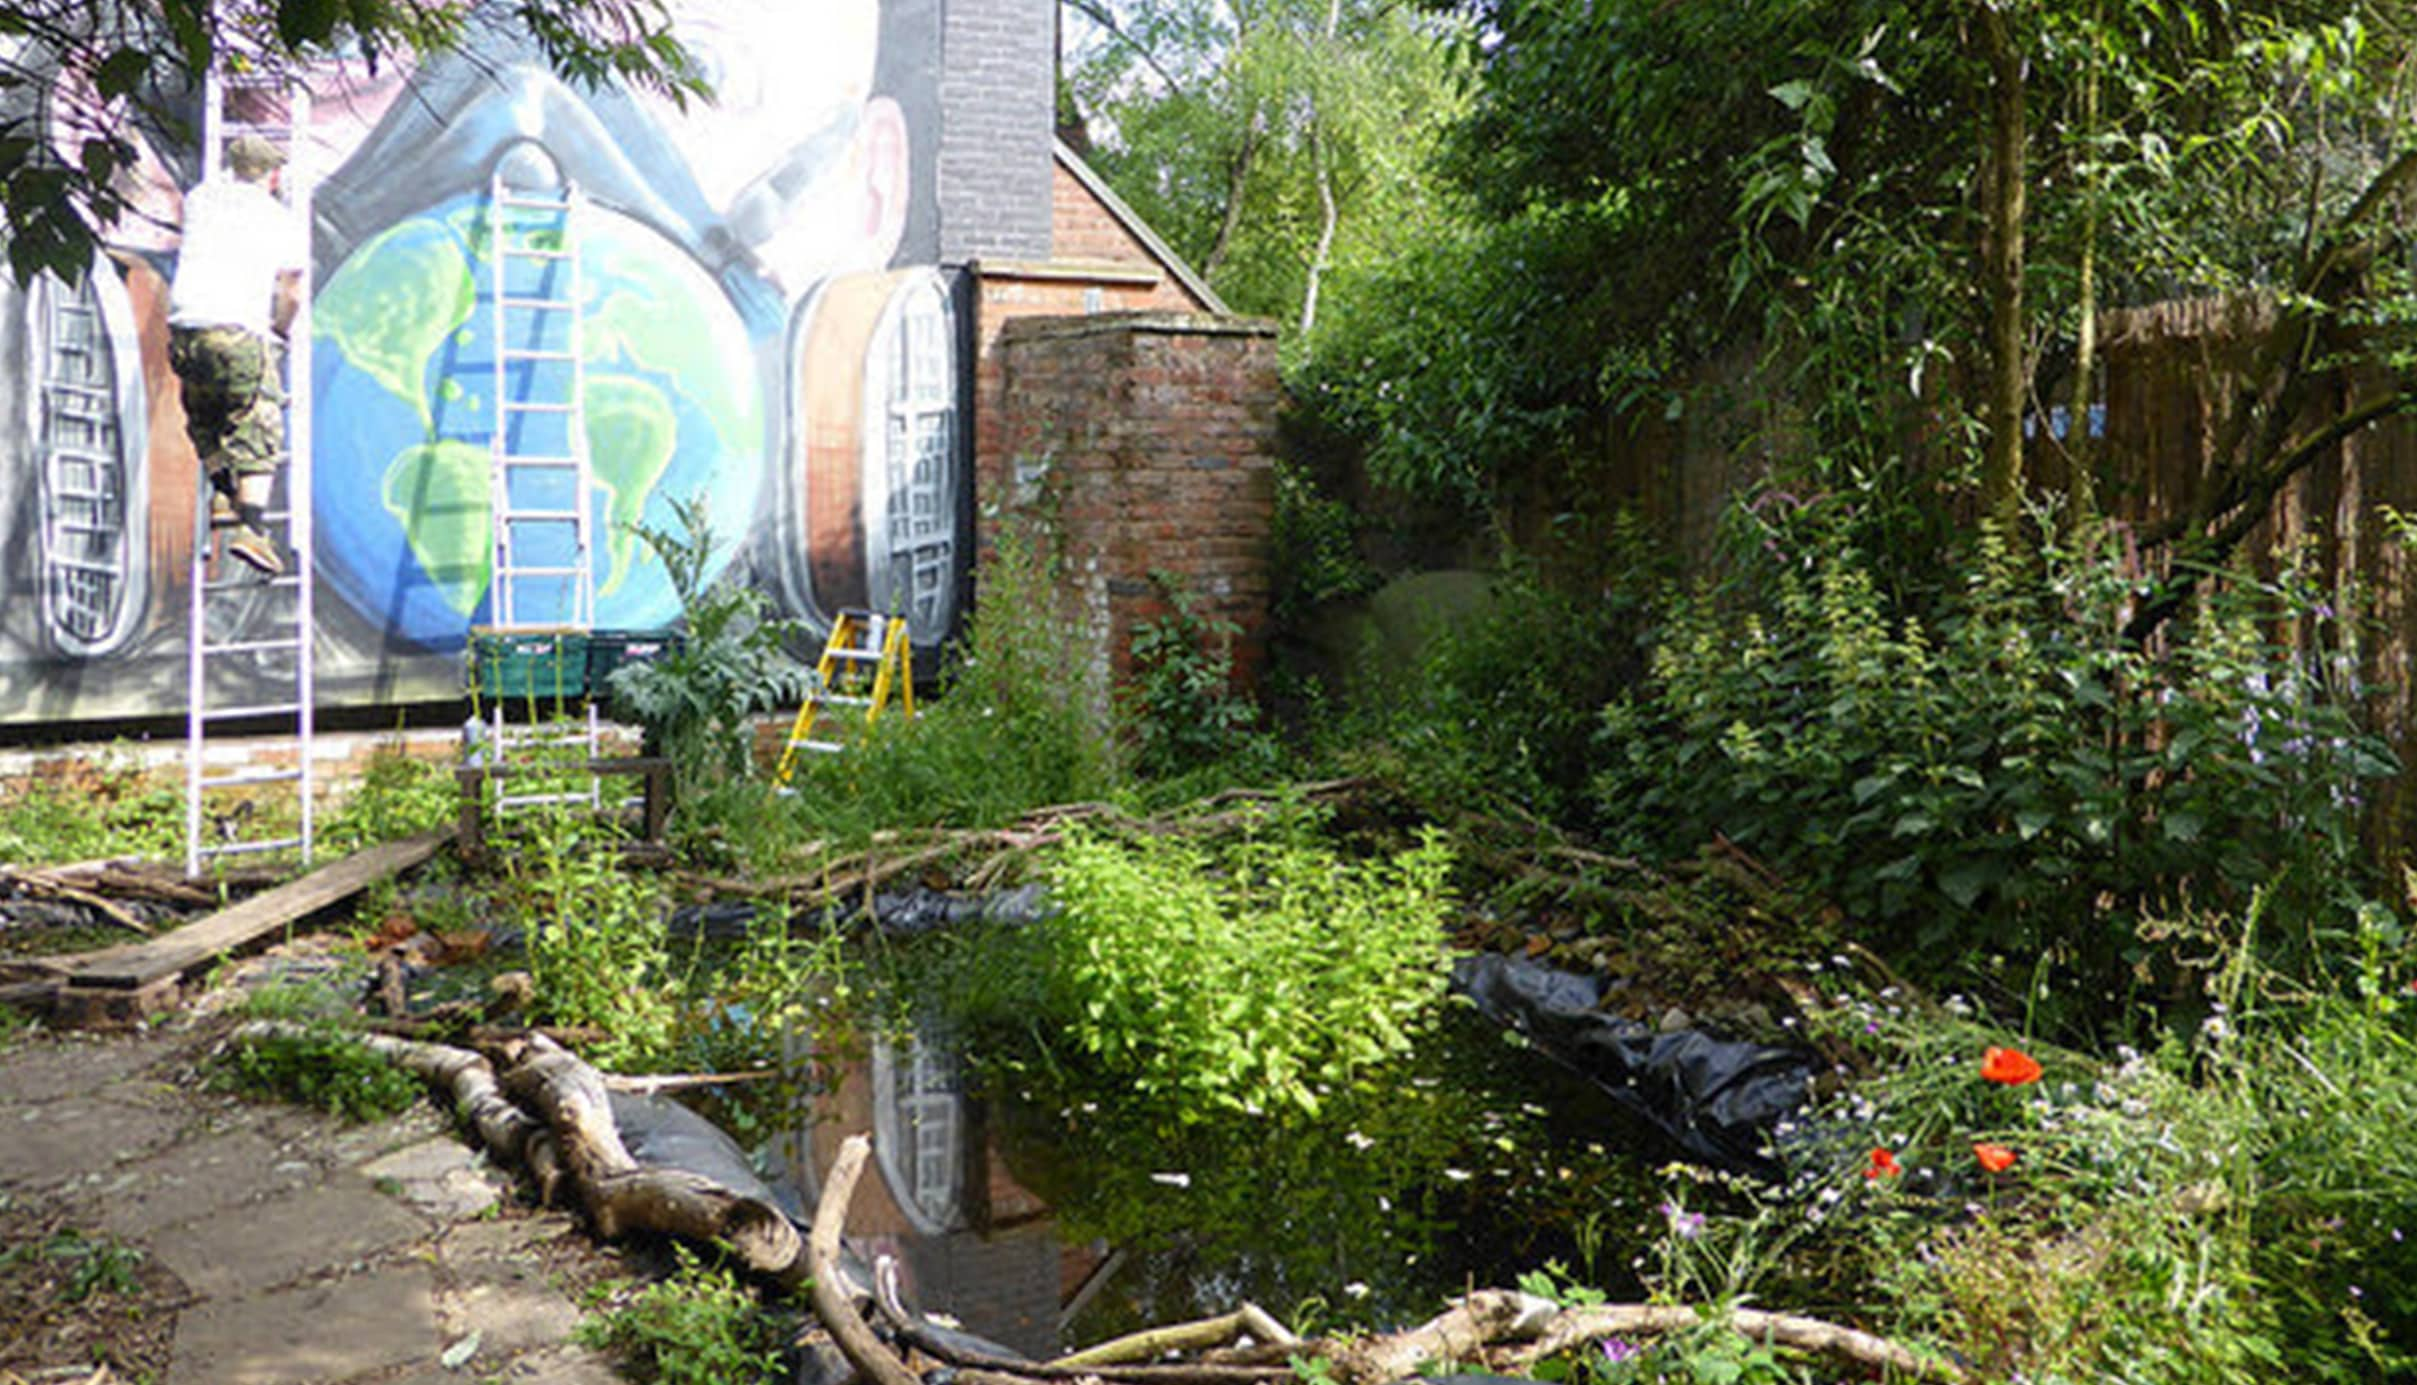 digbeth-community-garden-1160x665